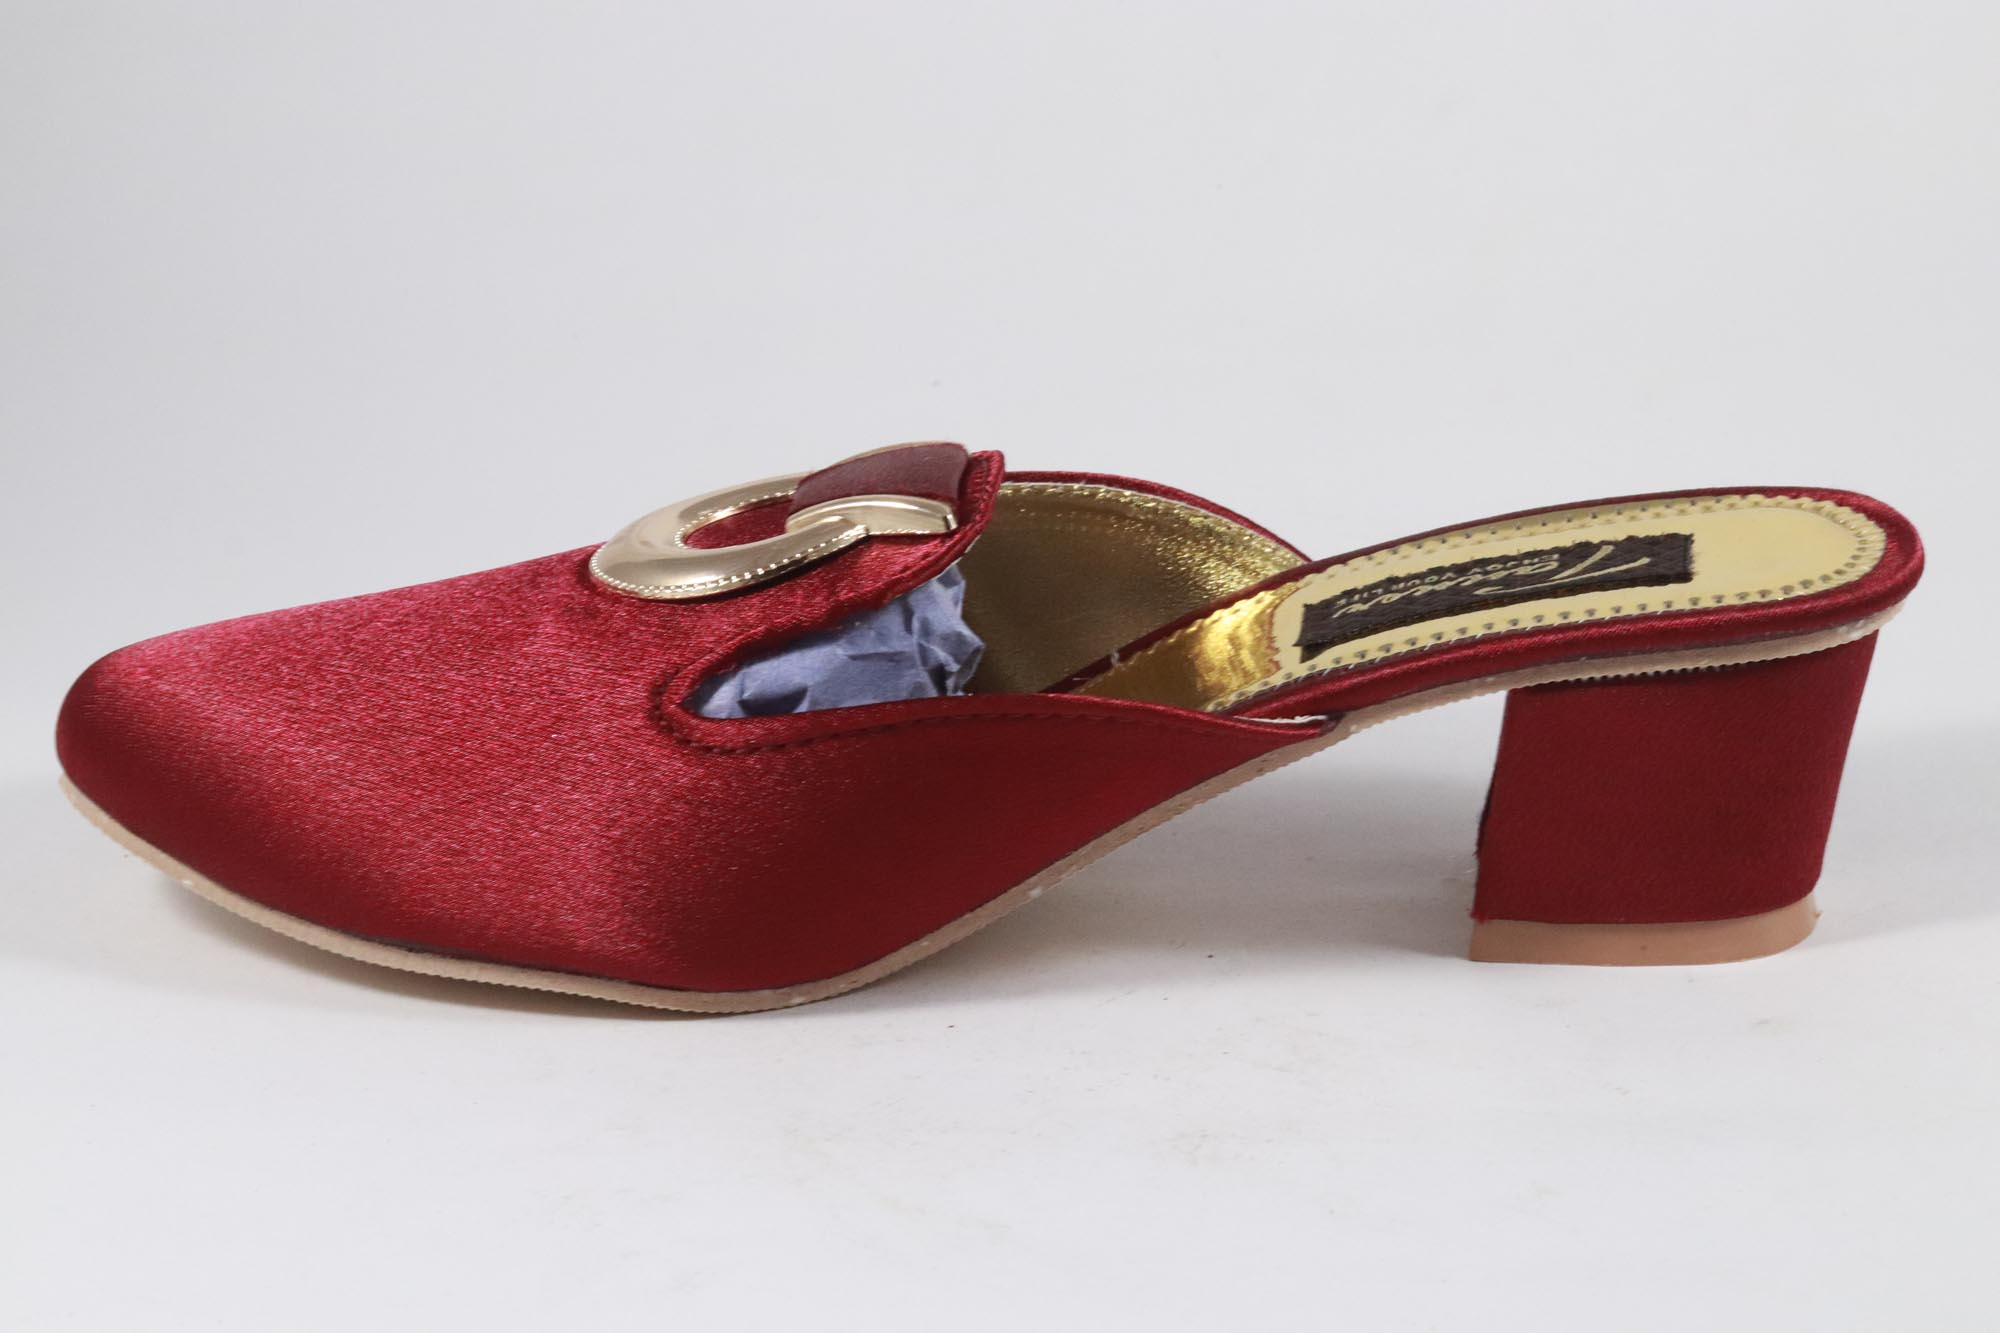 AMRIT FOOTCARE FANCY Shoes, Belliles AMRIT-163 (RED, 7-10, 6 PAIR)